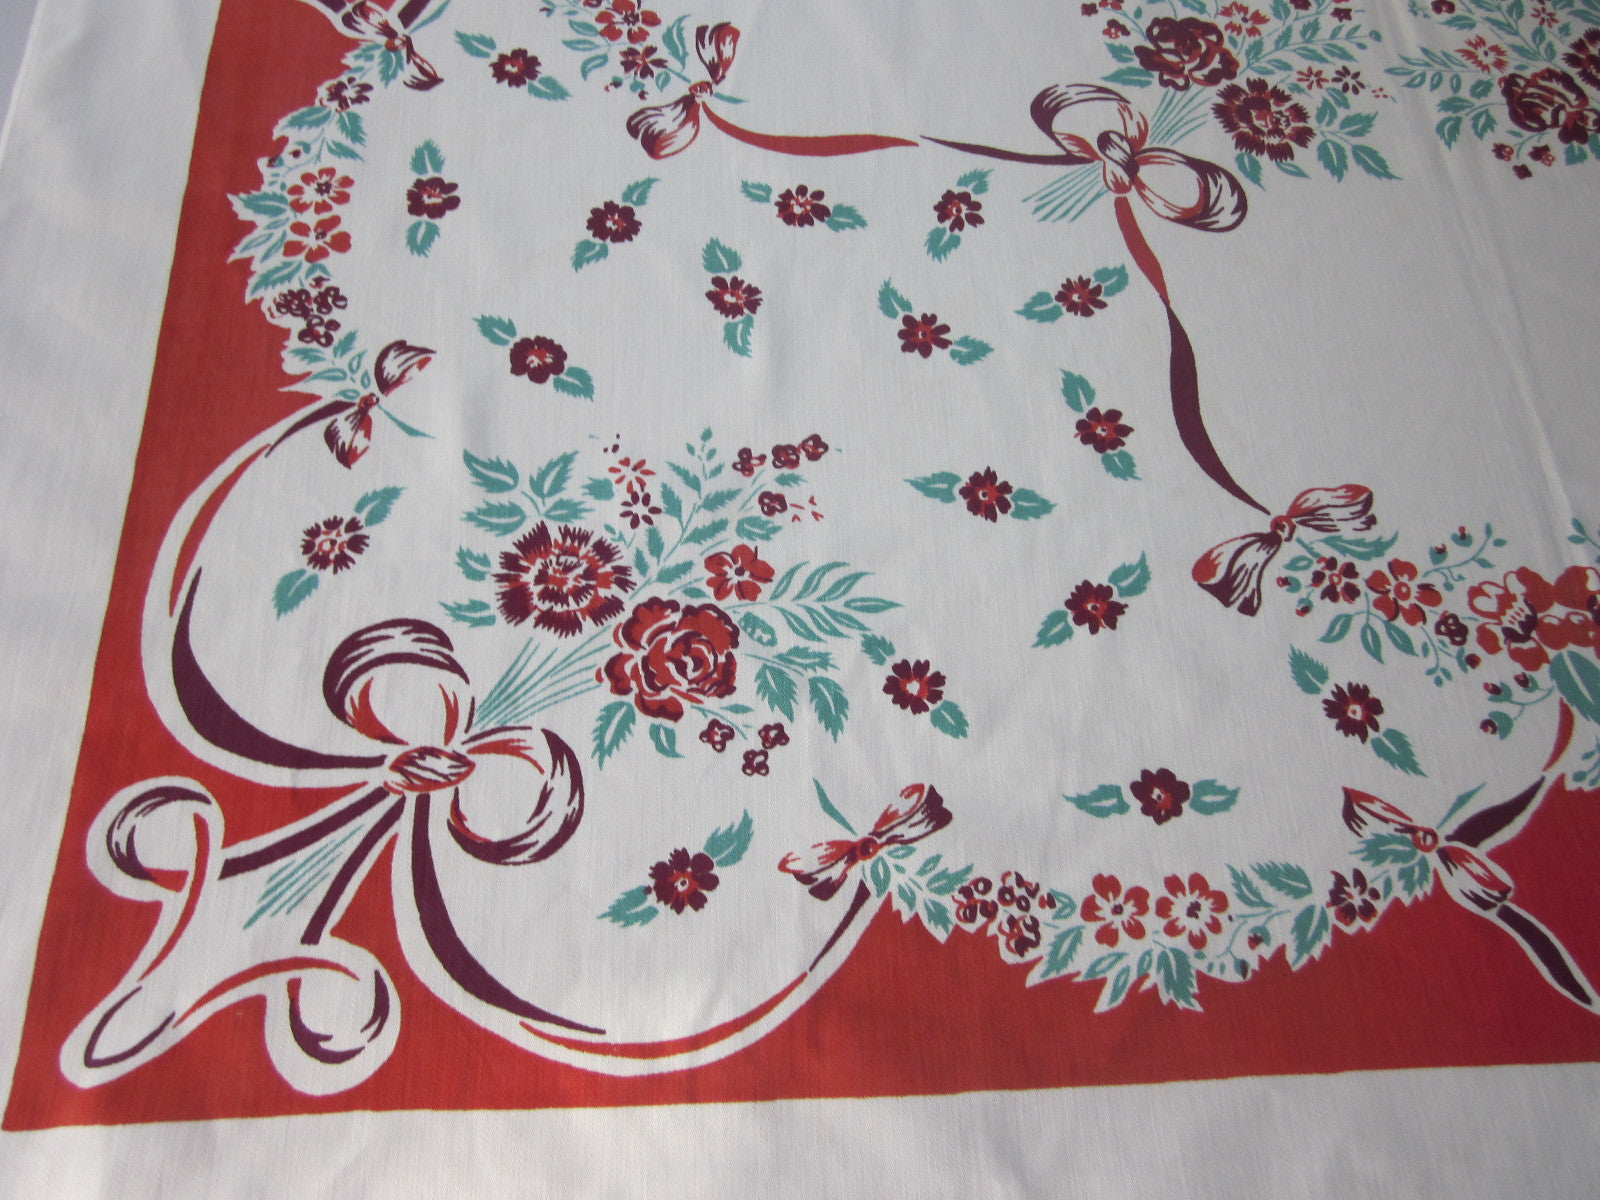 Magenta Green Flowers Ribbons on Red Floral Vintage Printed Tablecloth (49 X 47)